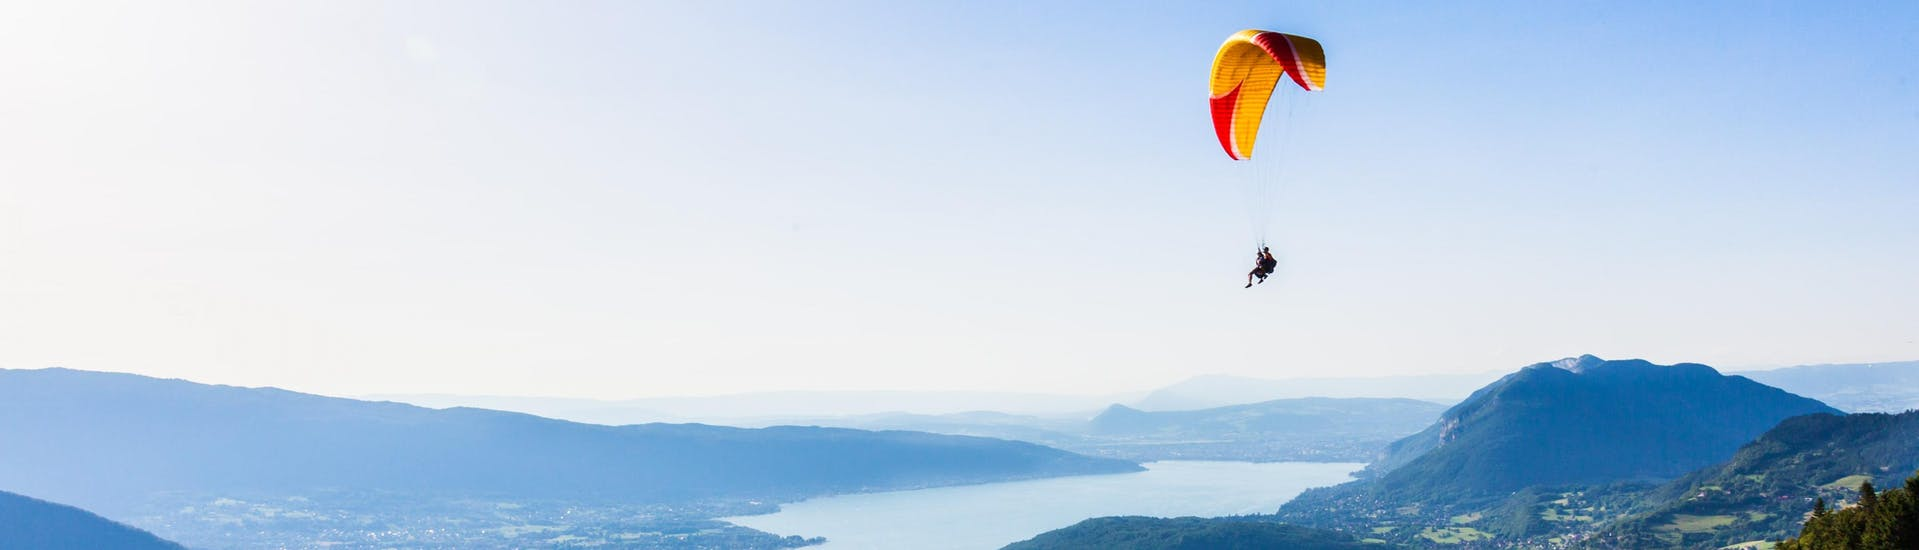 A tandem master and their passenger are gently gliding through the skies while paragliding at Lac d'Annecy.